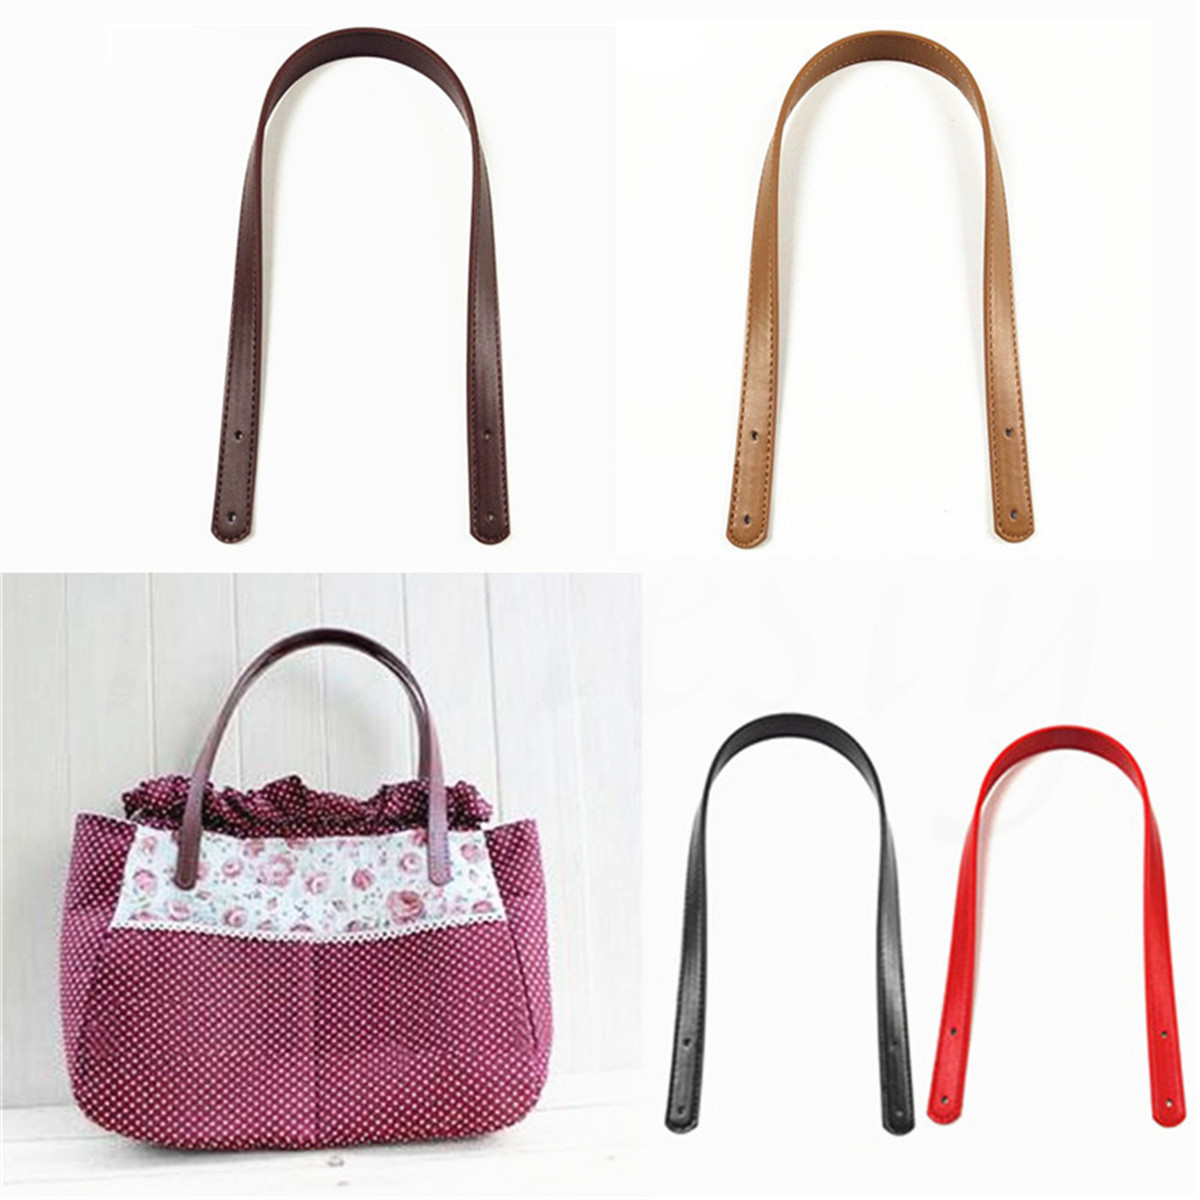 48fb90c296d5 Details about 2pcs 62cm Girls PU Leather Bag Handles Handbag Strap Bag  Accessories Replacement